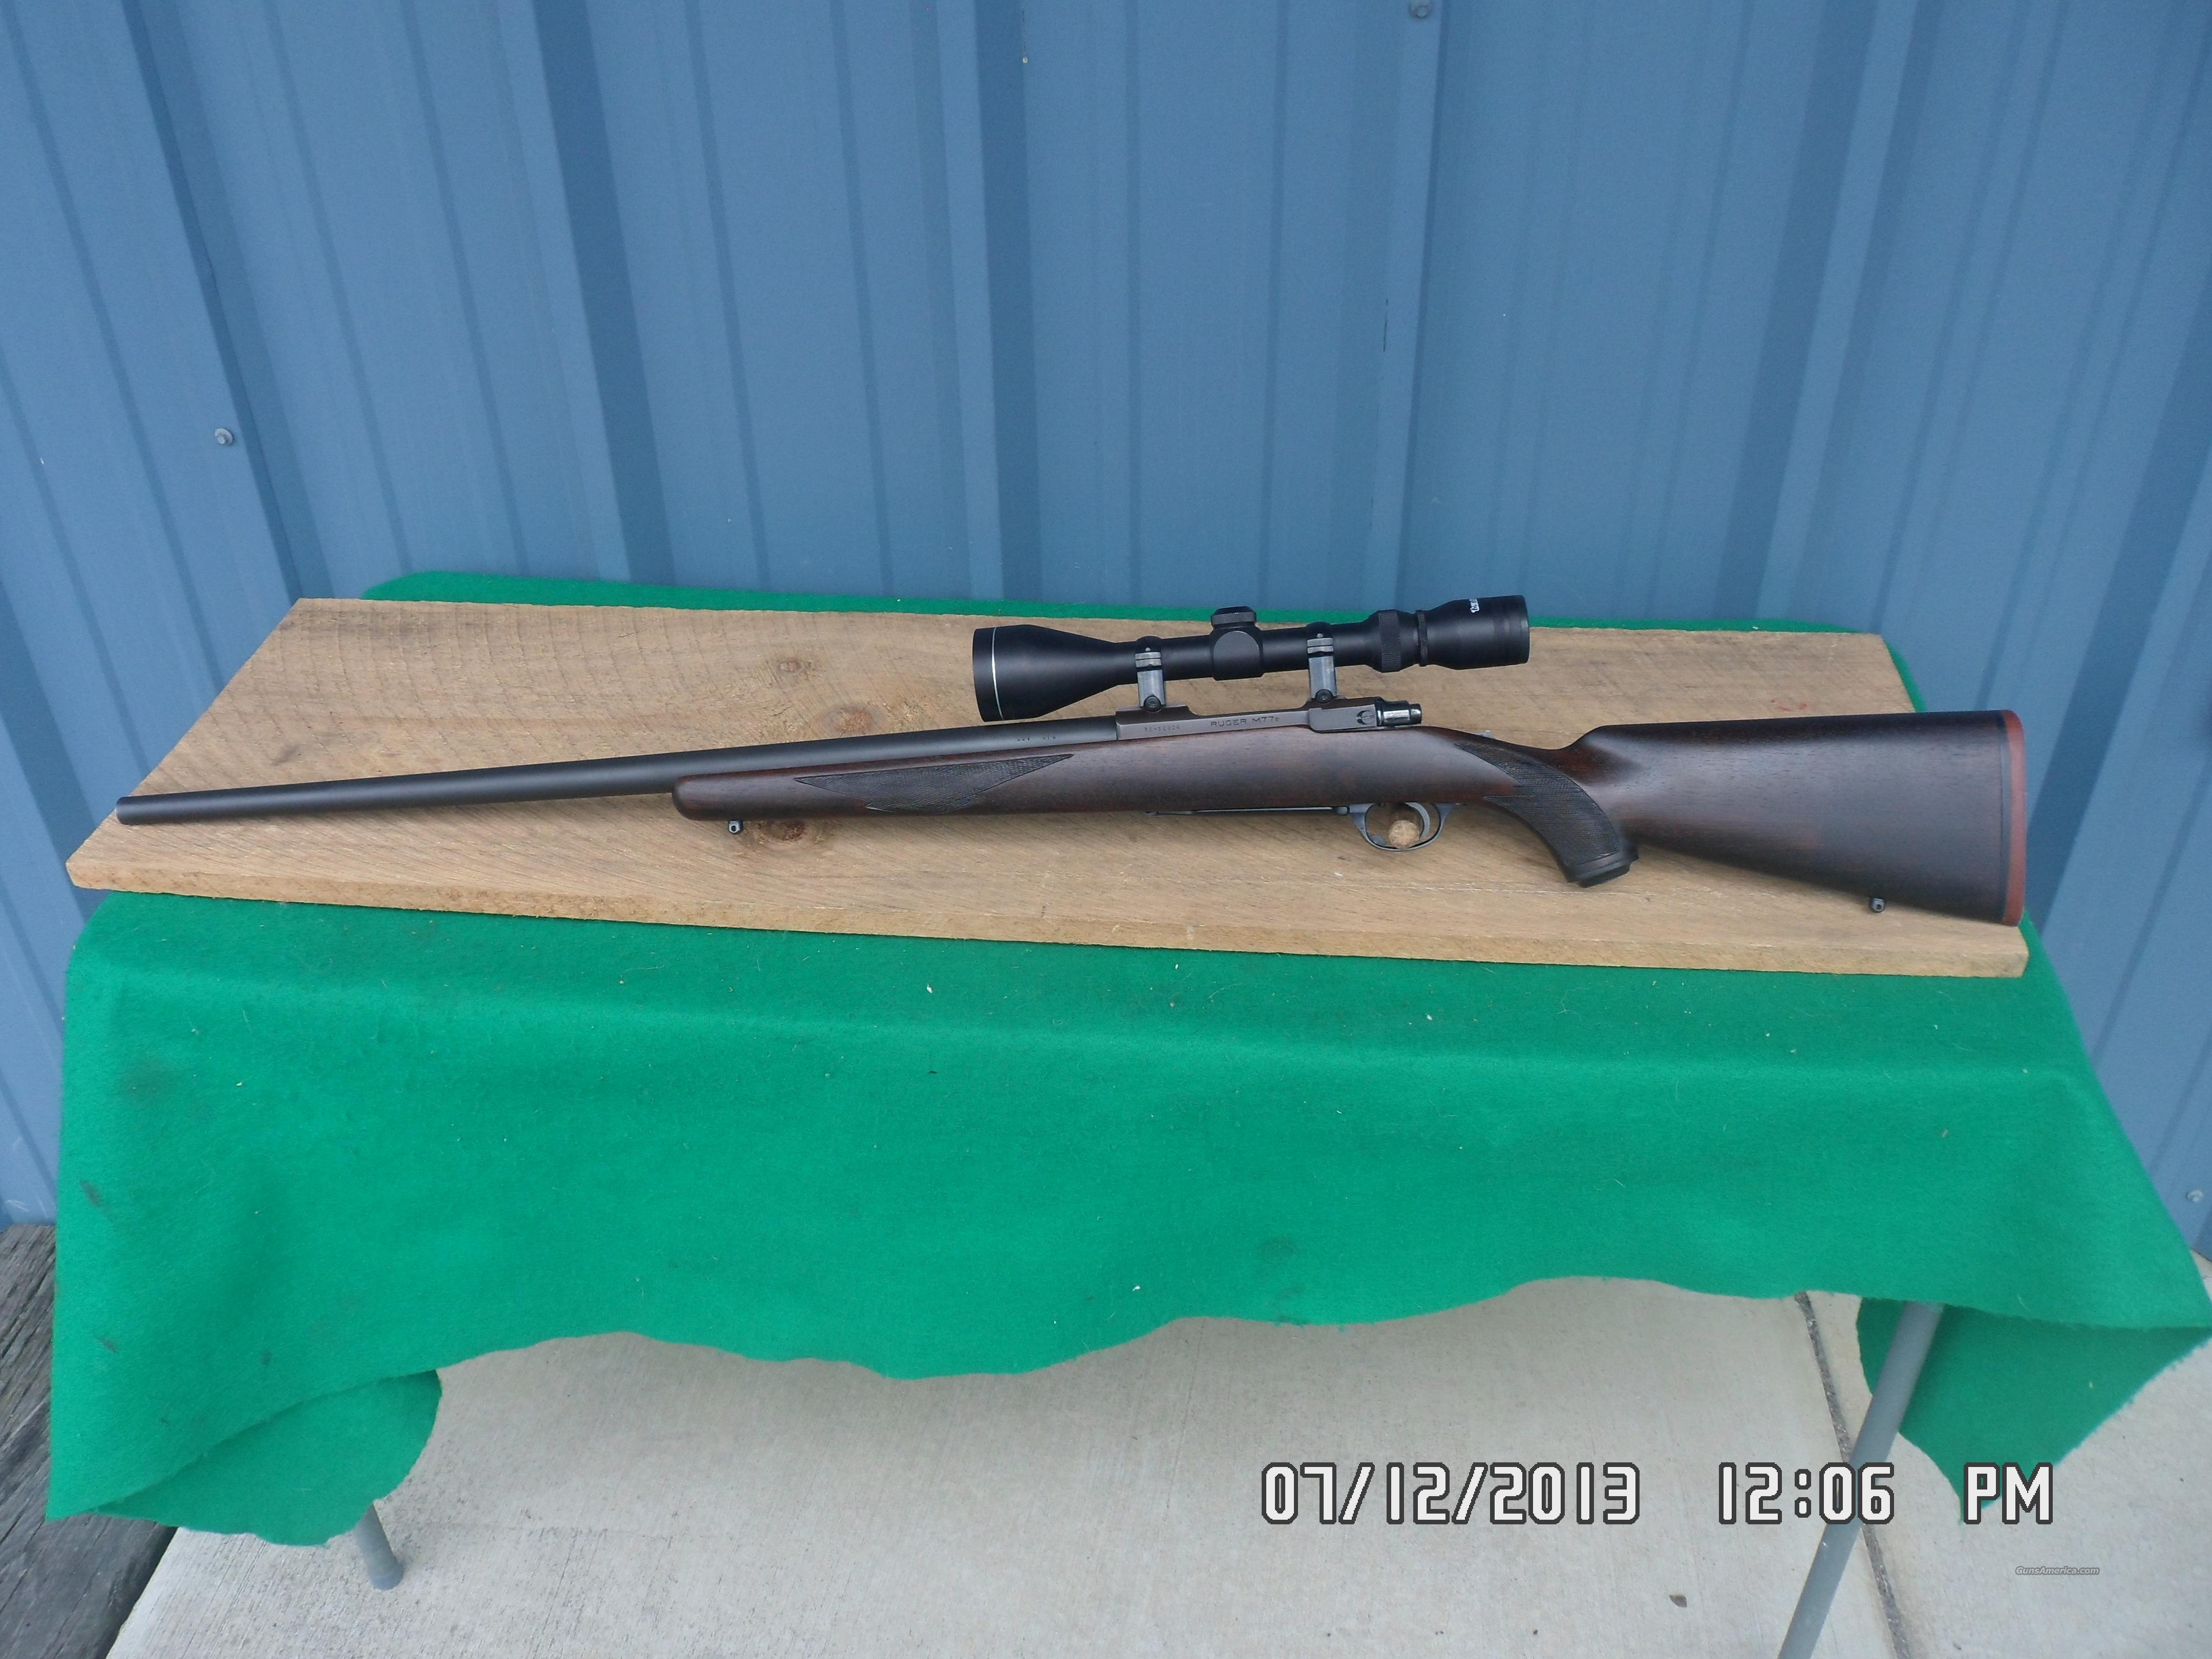 RUGER 77,1984 CUSTOM HEAVY VARMIT RIFLE,243 WIN. SCOPED,ALL EXCELLENT CONDITION.  Guns > Rifles > Ruger Rifles > Model 77